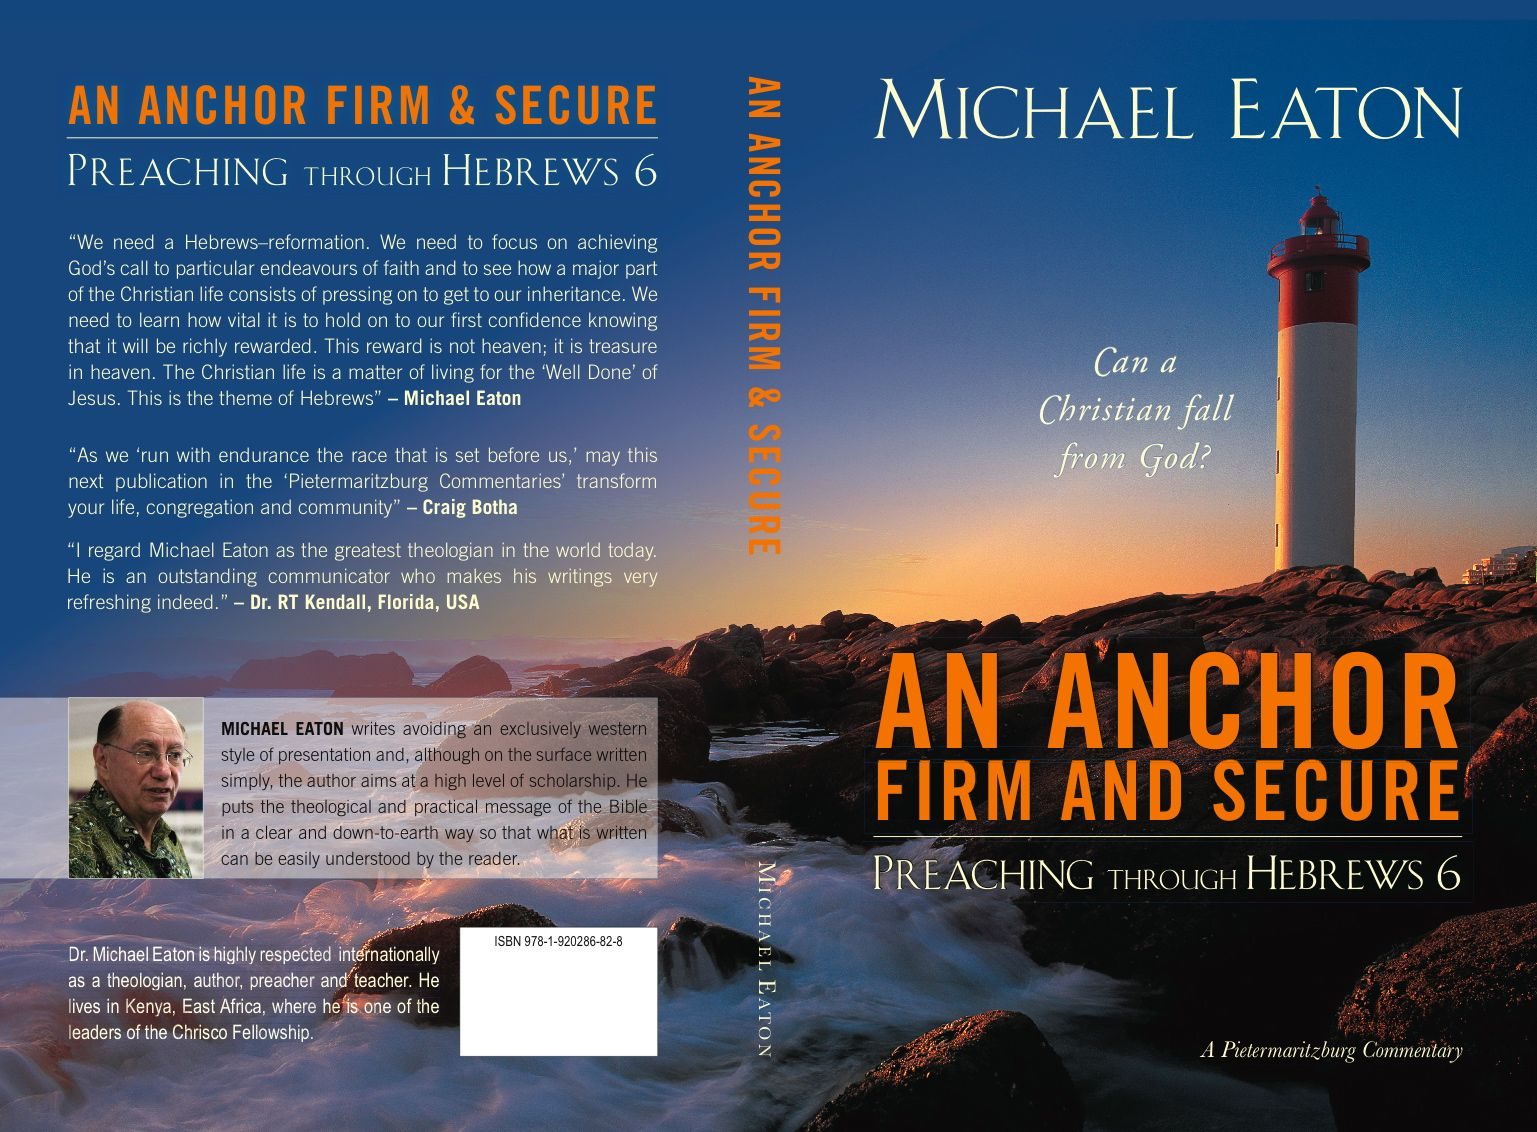 An Anchor Firm and Secure